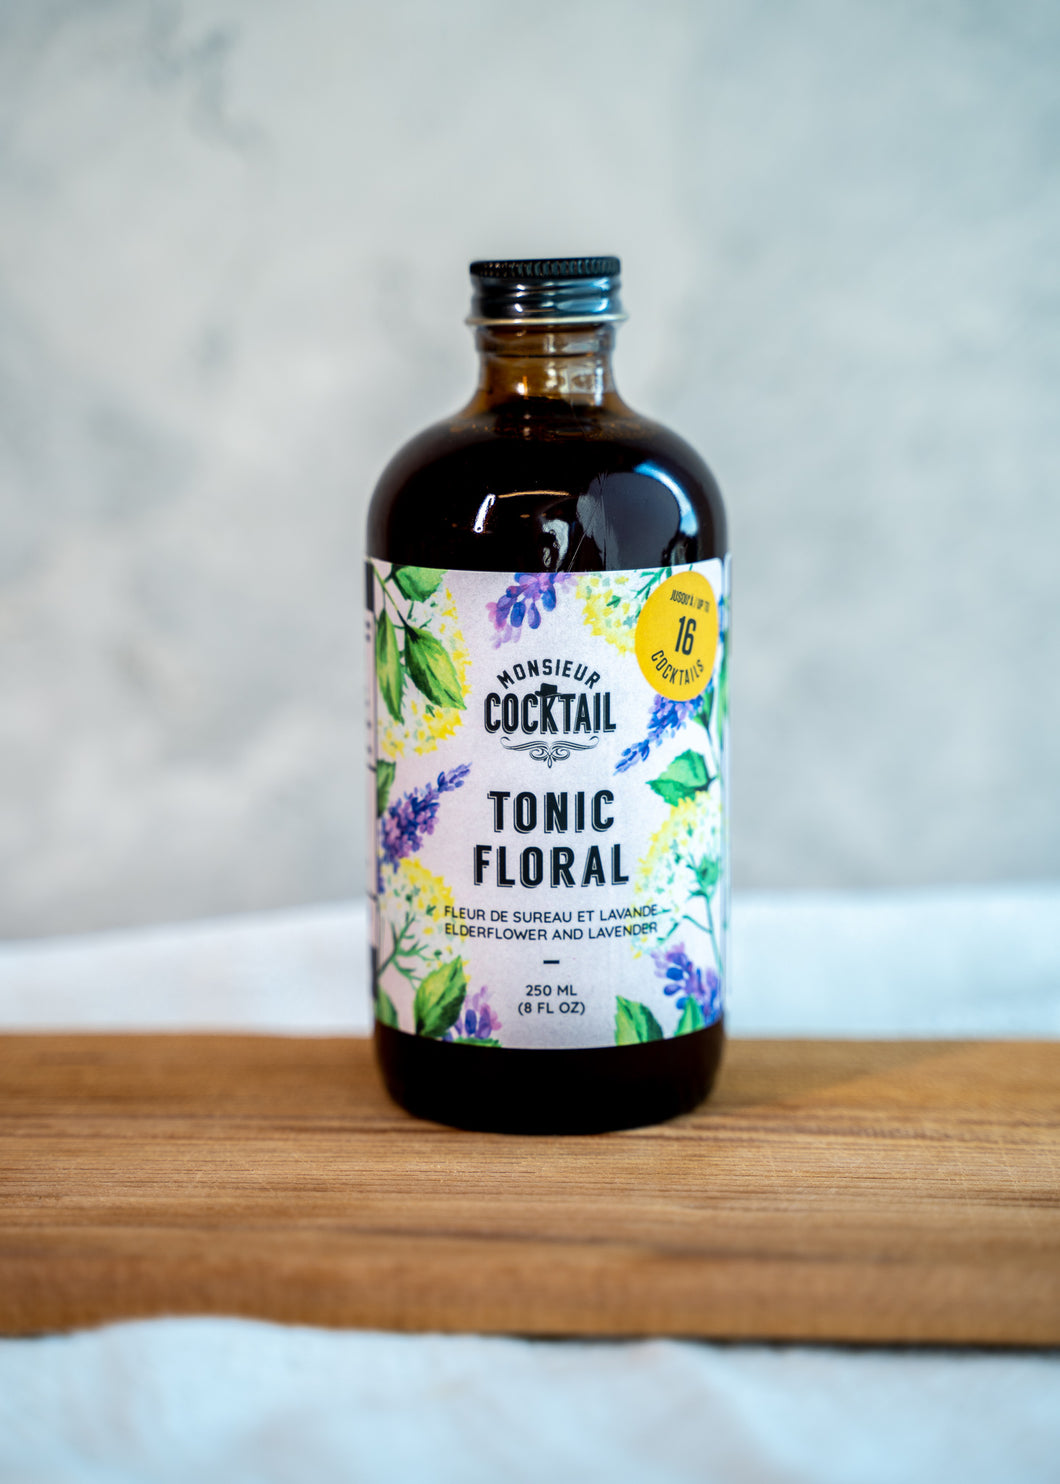 Tonic Floral